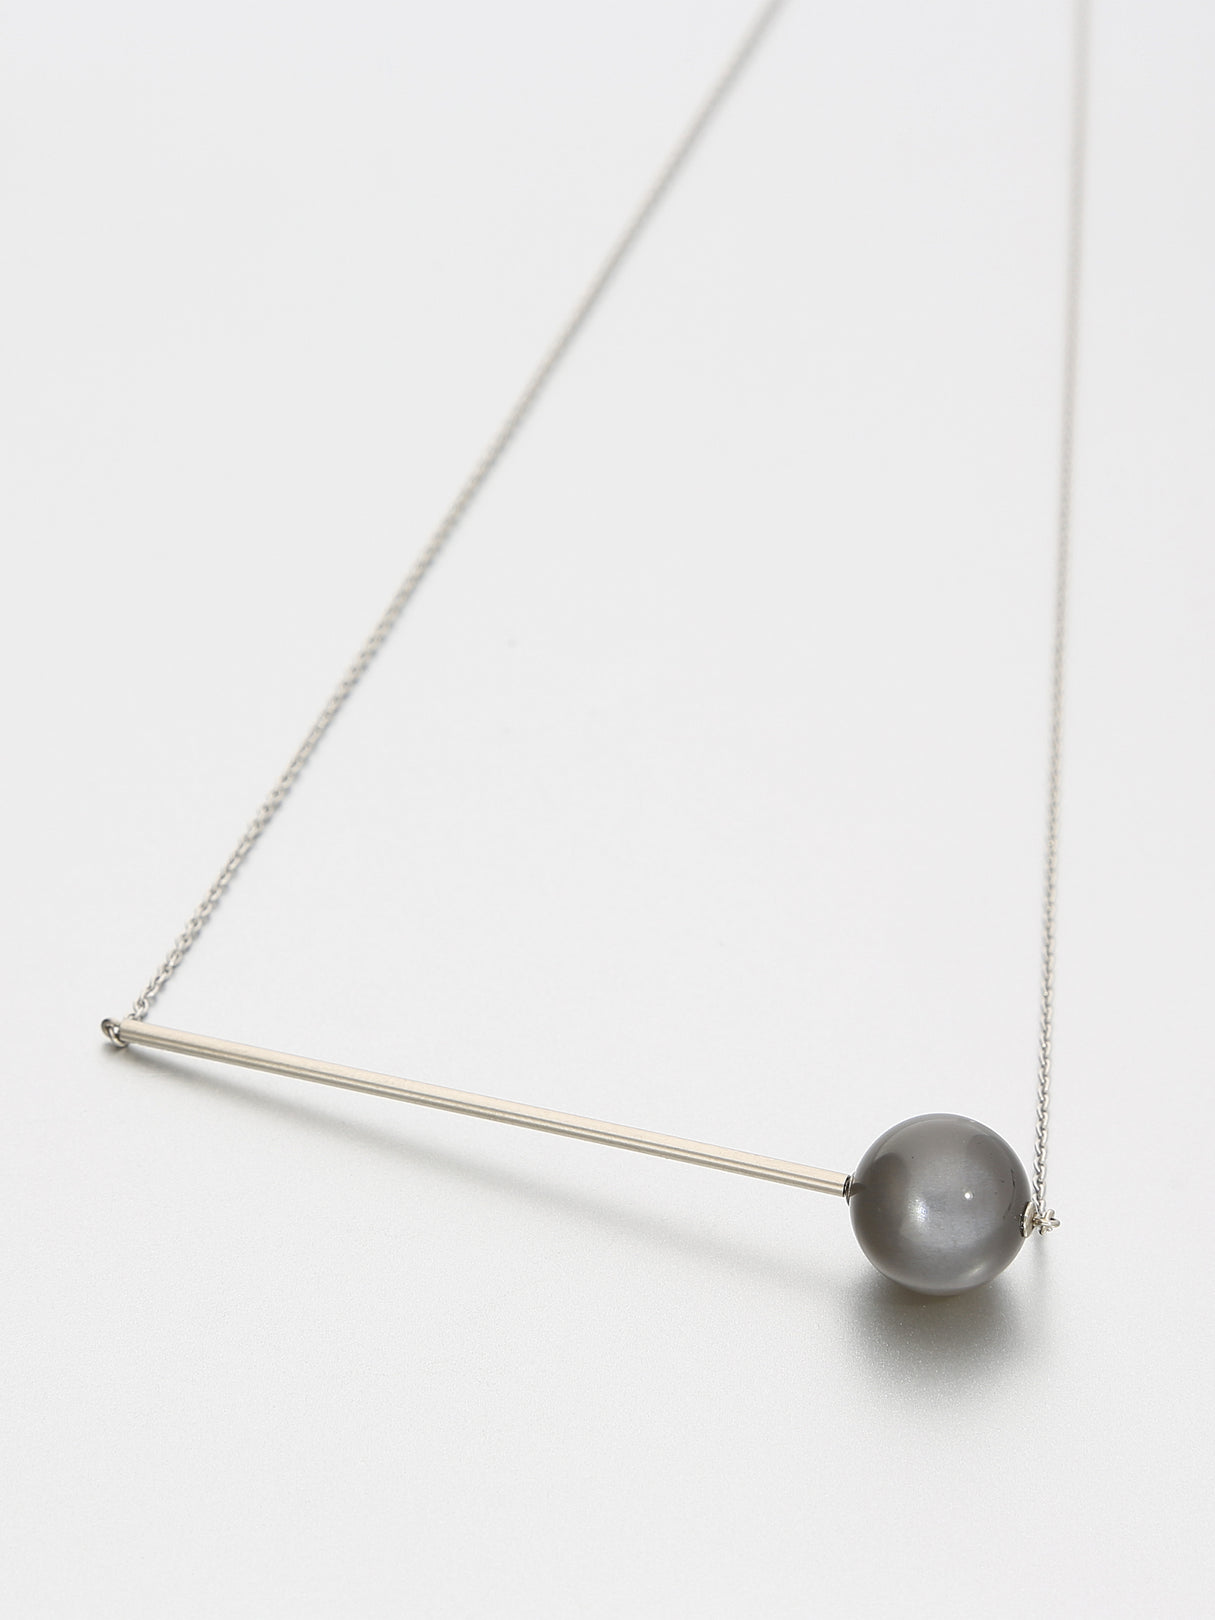 Abacus Moonstone Necklace, White gold with dark stormy grey moonstone 12 mm